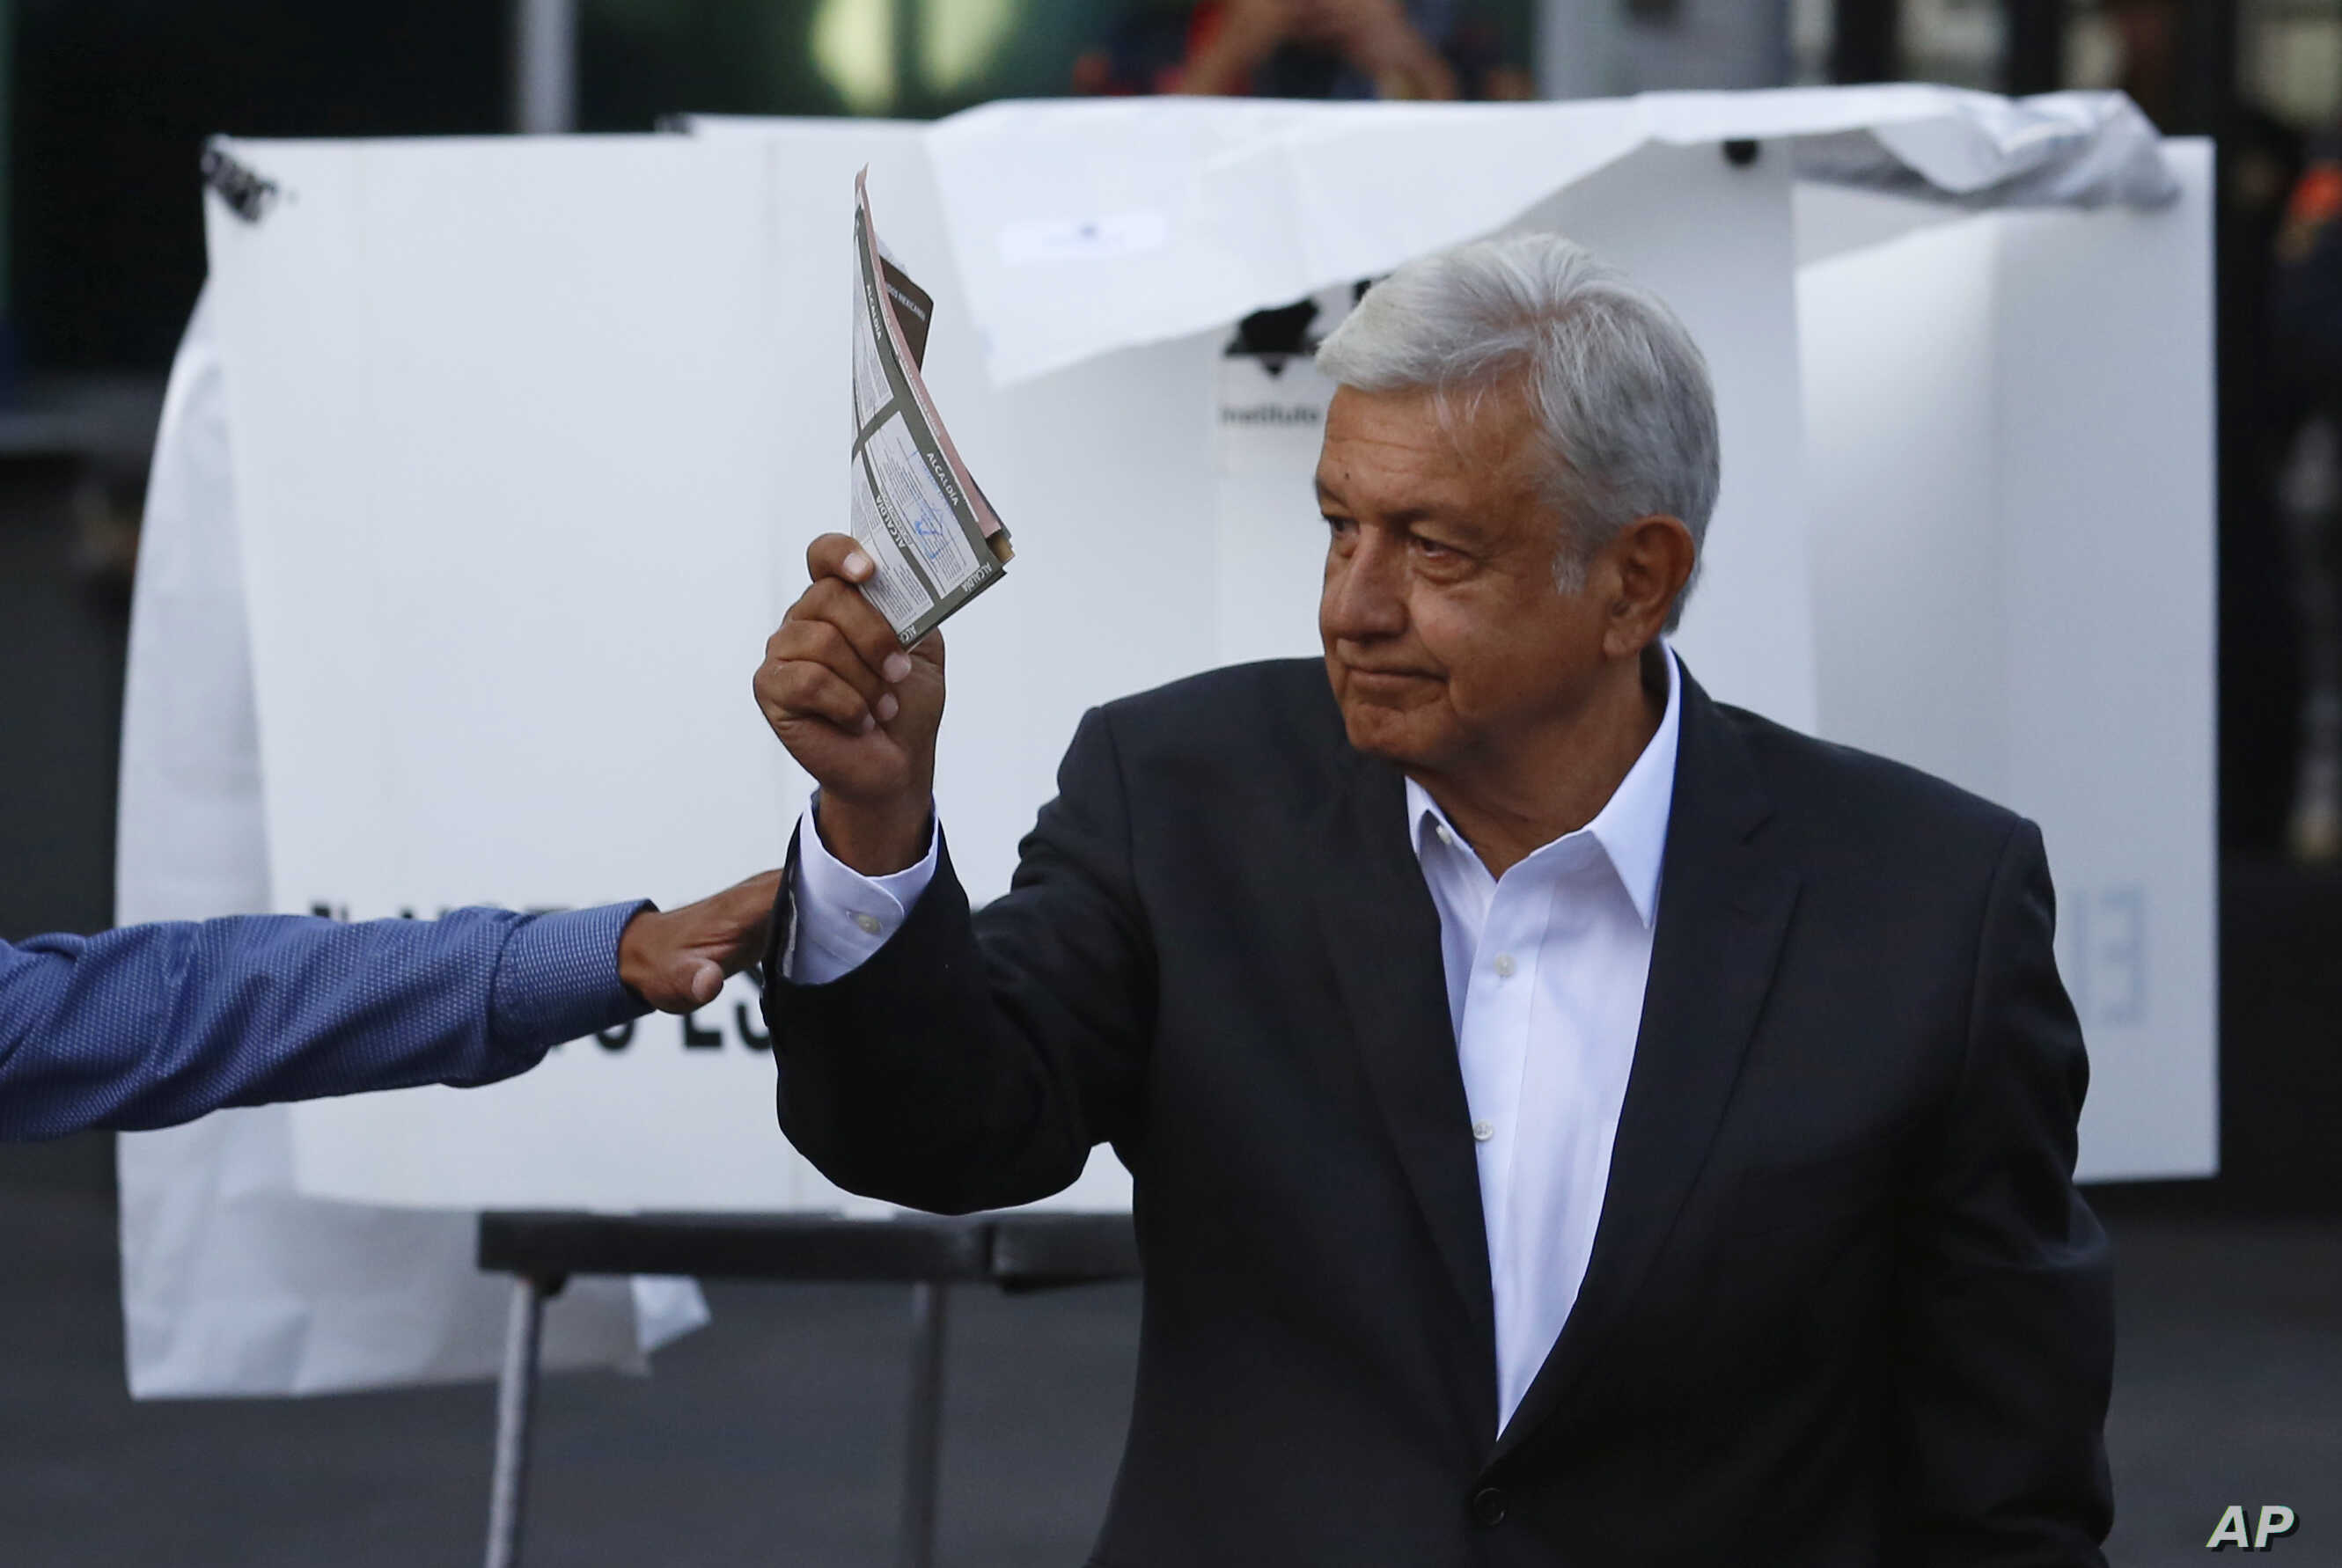 Presidential candidate Andres Manuel Lopez Obrador, of the MORENA party, shows his ballot to the press before casting it during general elections in Mexico City, July 1, 2018.